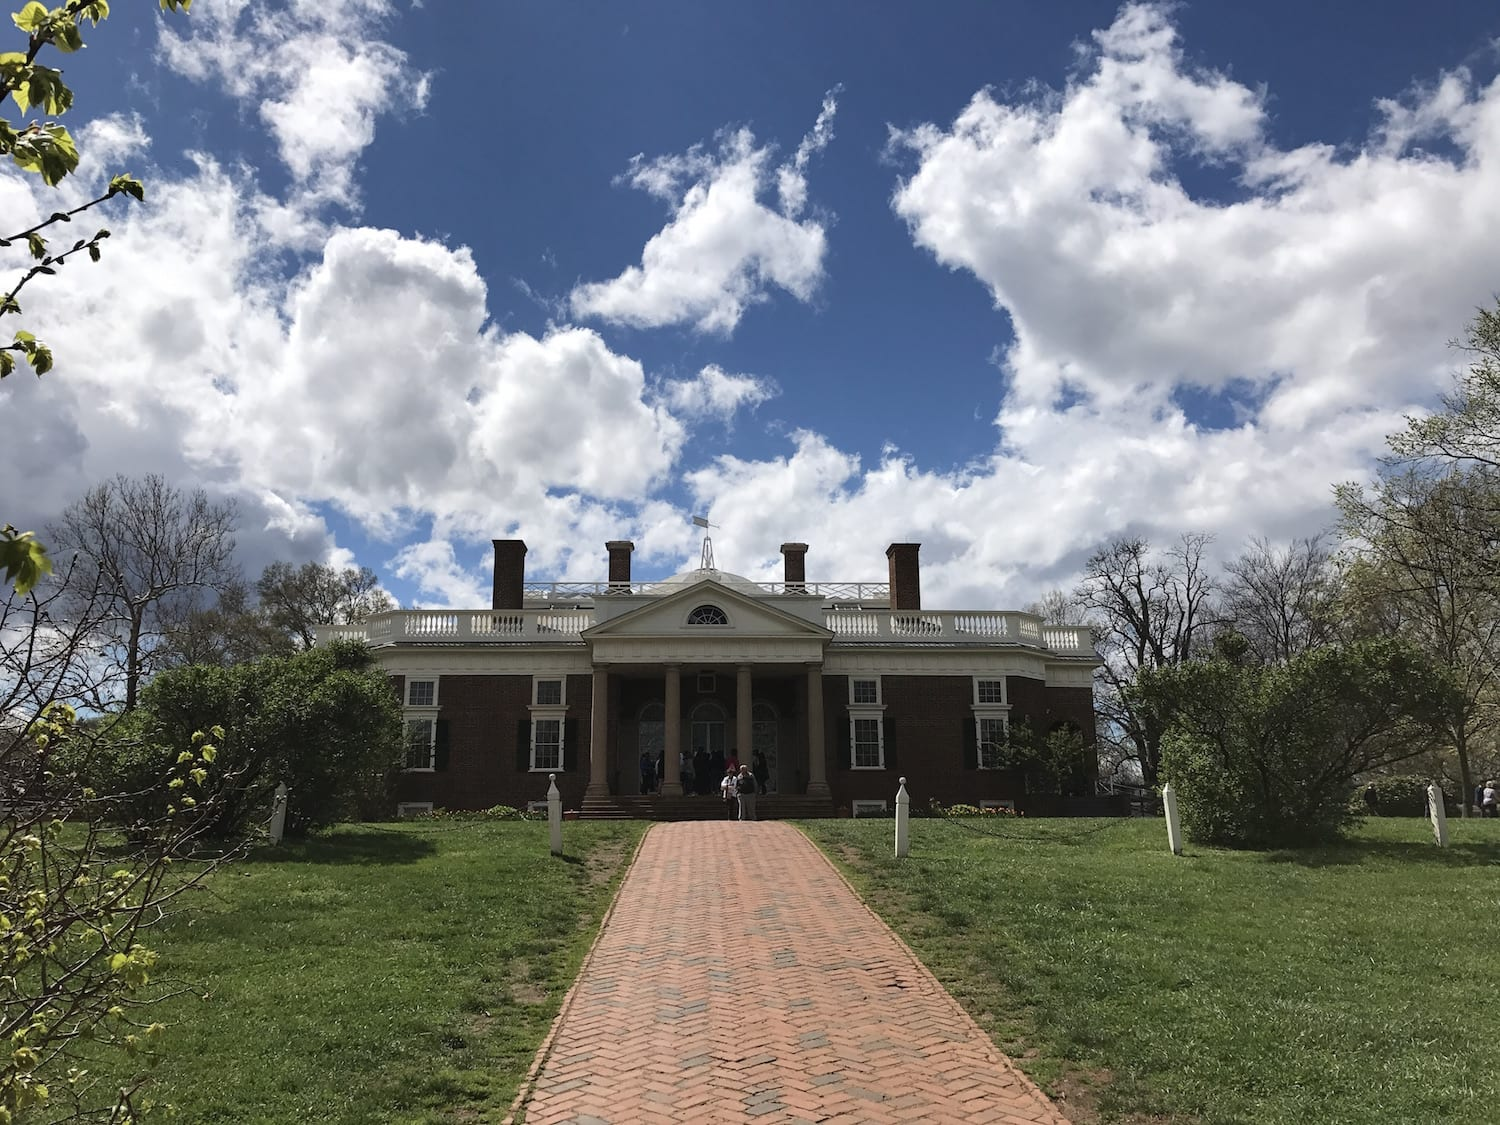 thomas jefferson did he live up Thomas jefferson's presidency jefferson became the third president of the united states on march 4, 1801 one of the first things he did was try to reduce the federal budget, moving power back into the hands of the states.